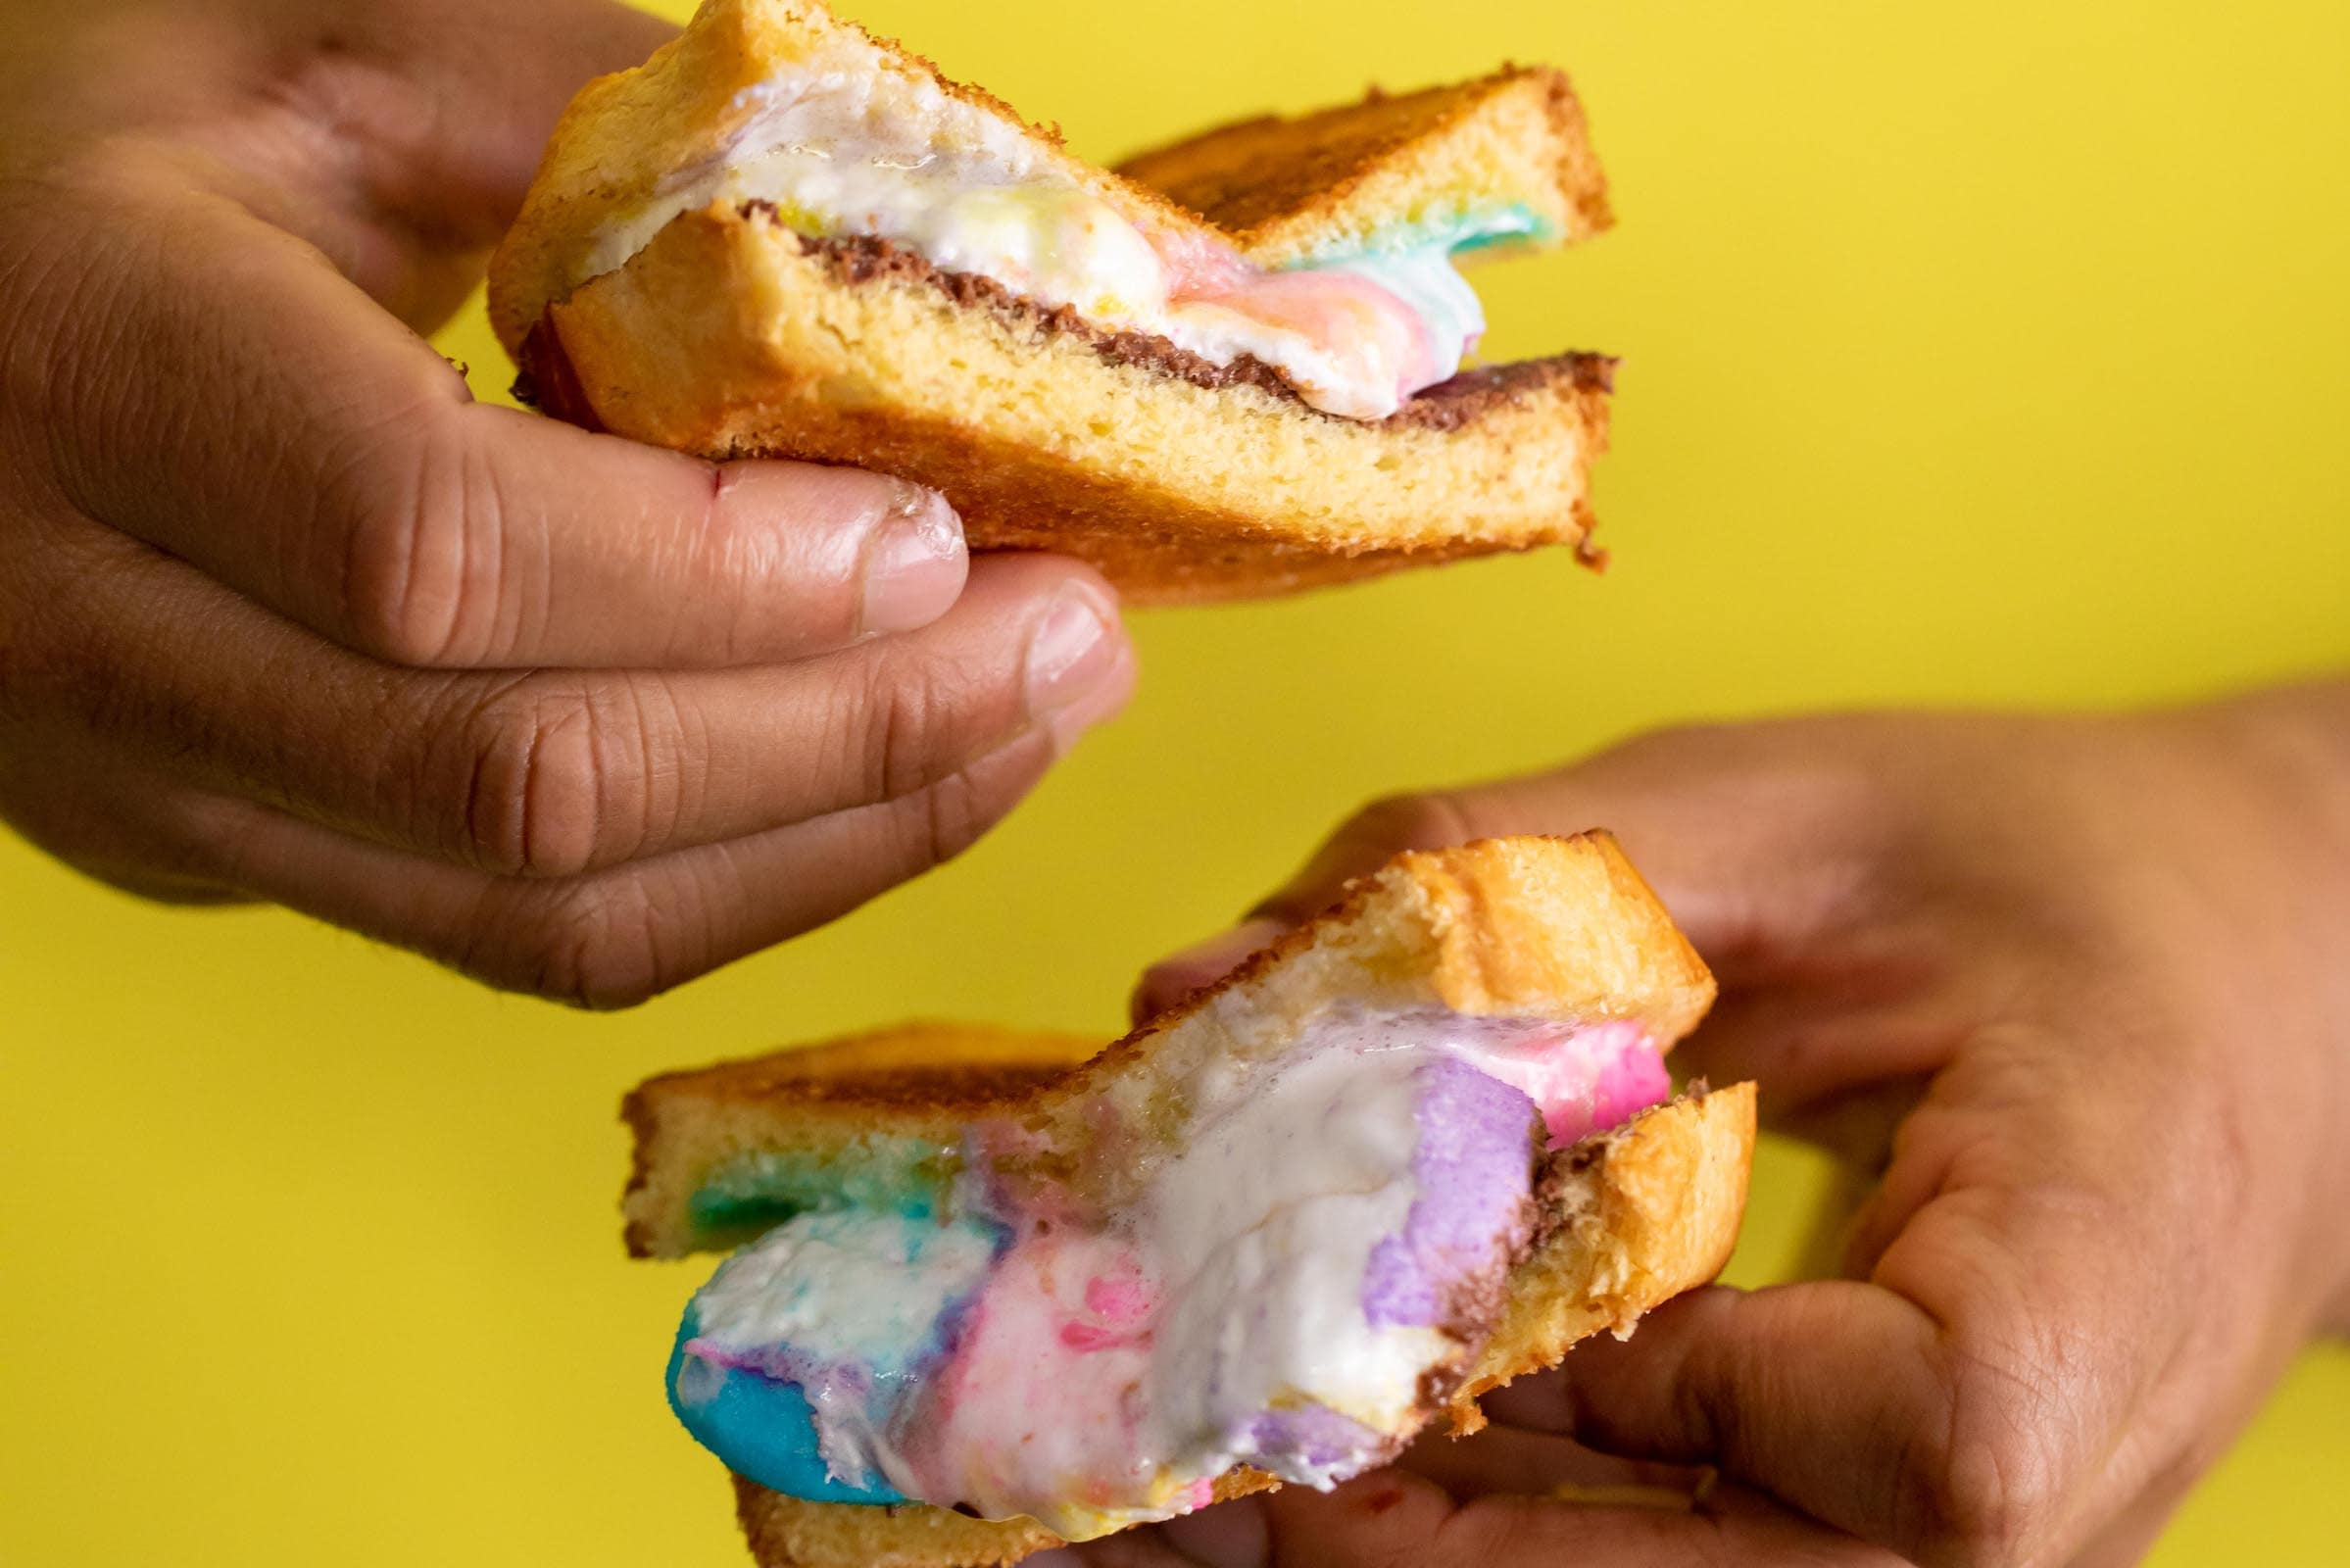 5D4A0060 - 20190328 - Peep Grilled Cheese - HIGH RES